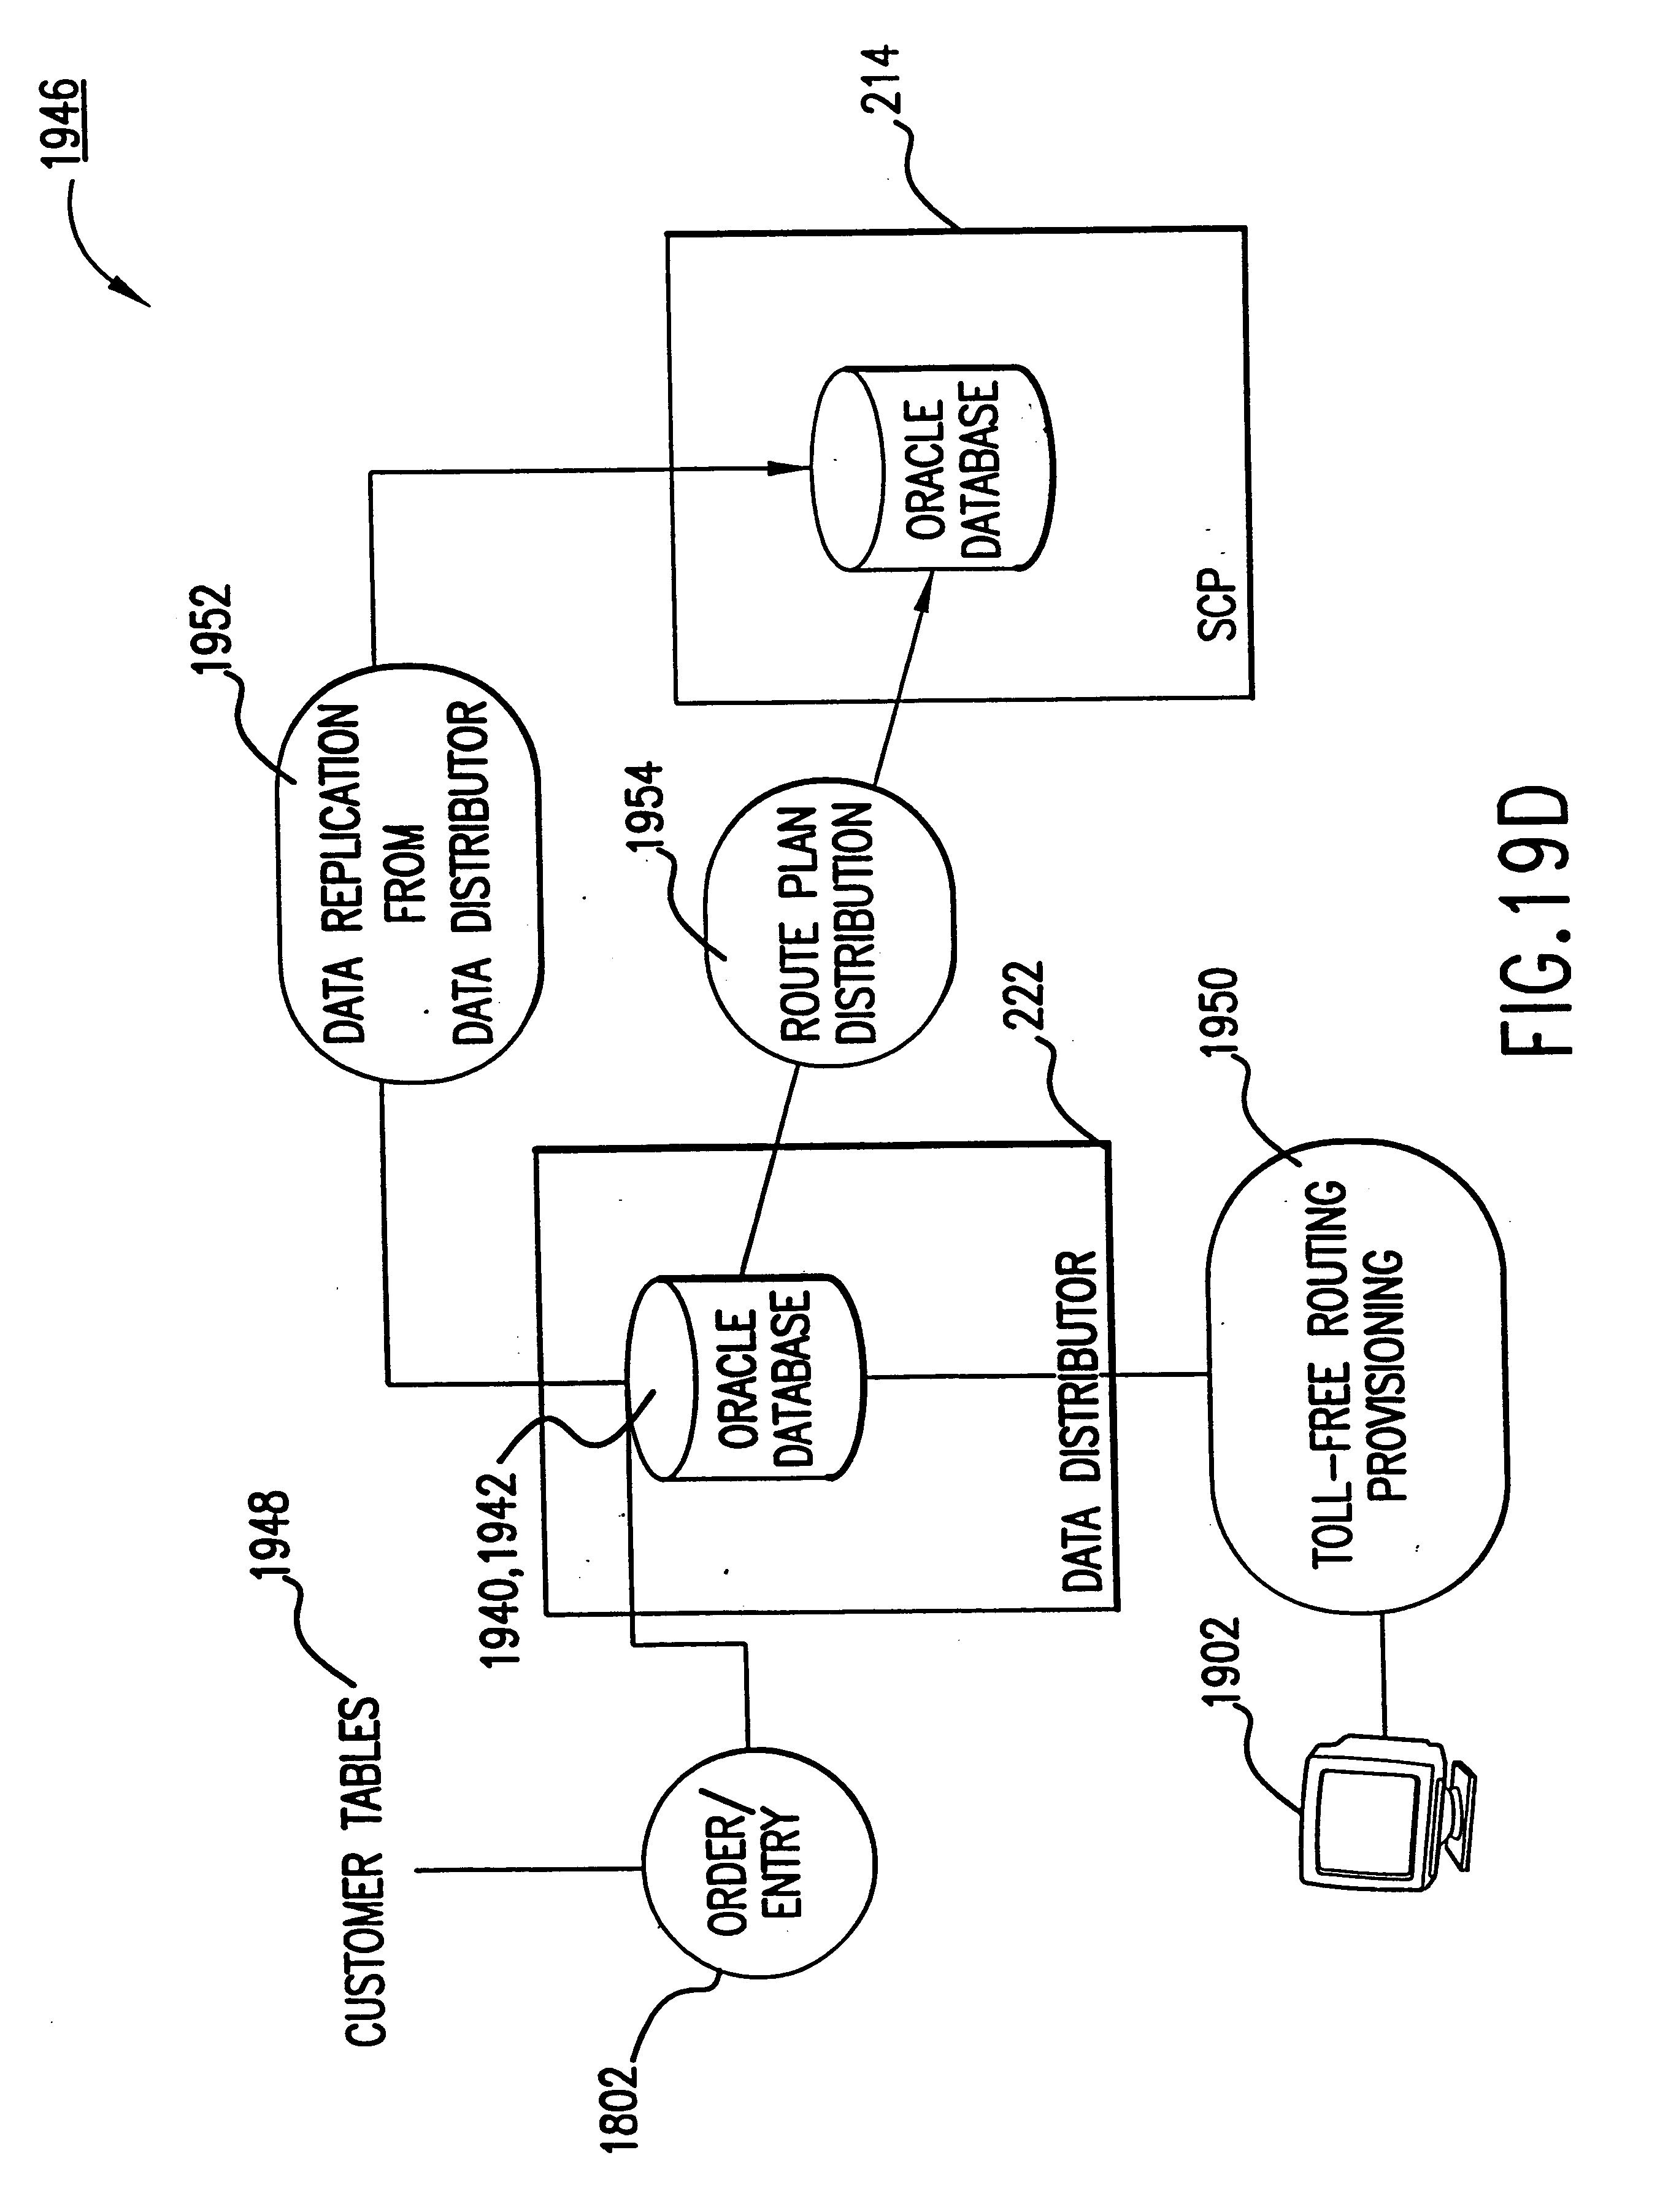 Patent Us 6614781 B1 Circuit Diagram 555 The Delay With Watchdog Composed Images